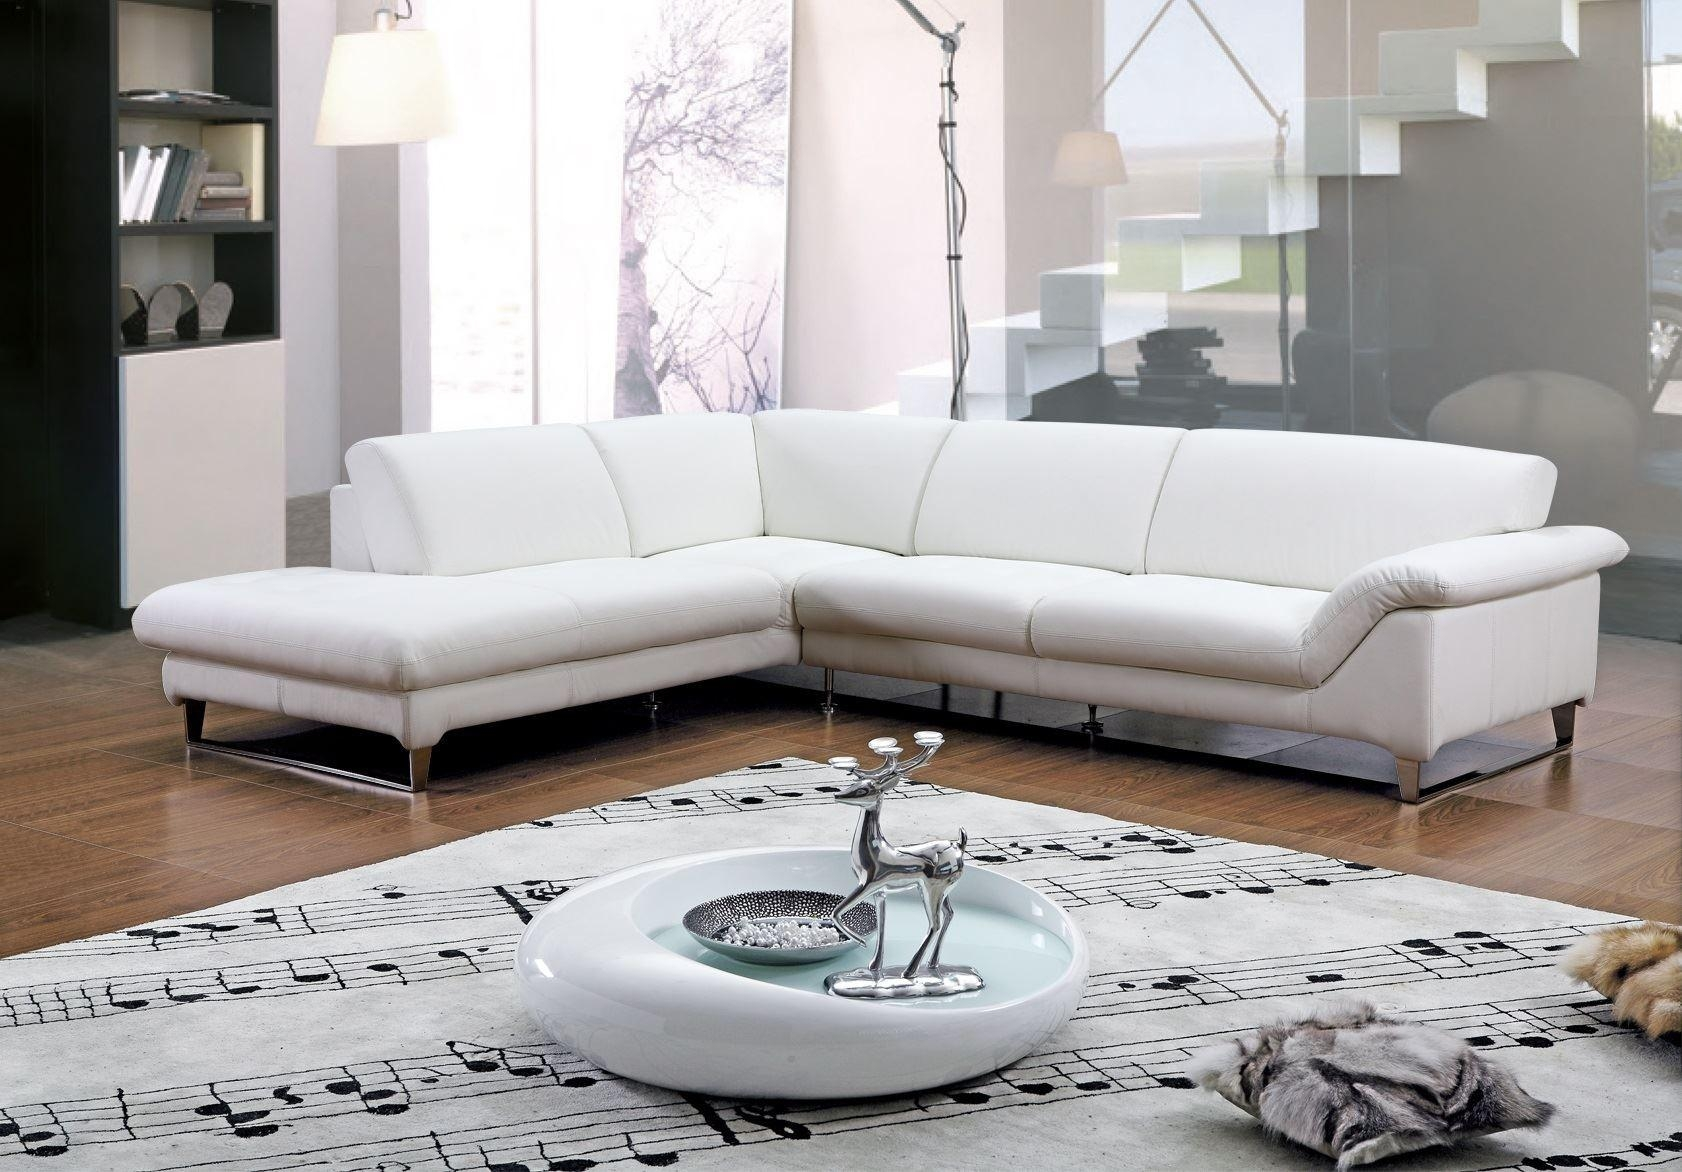 Sofas : Amazing Small Leather Sofa Leather Corner Sofa Sofas And For Large Black Leather Corner Sofas (View 8 of 22)